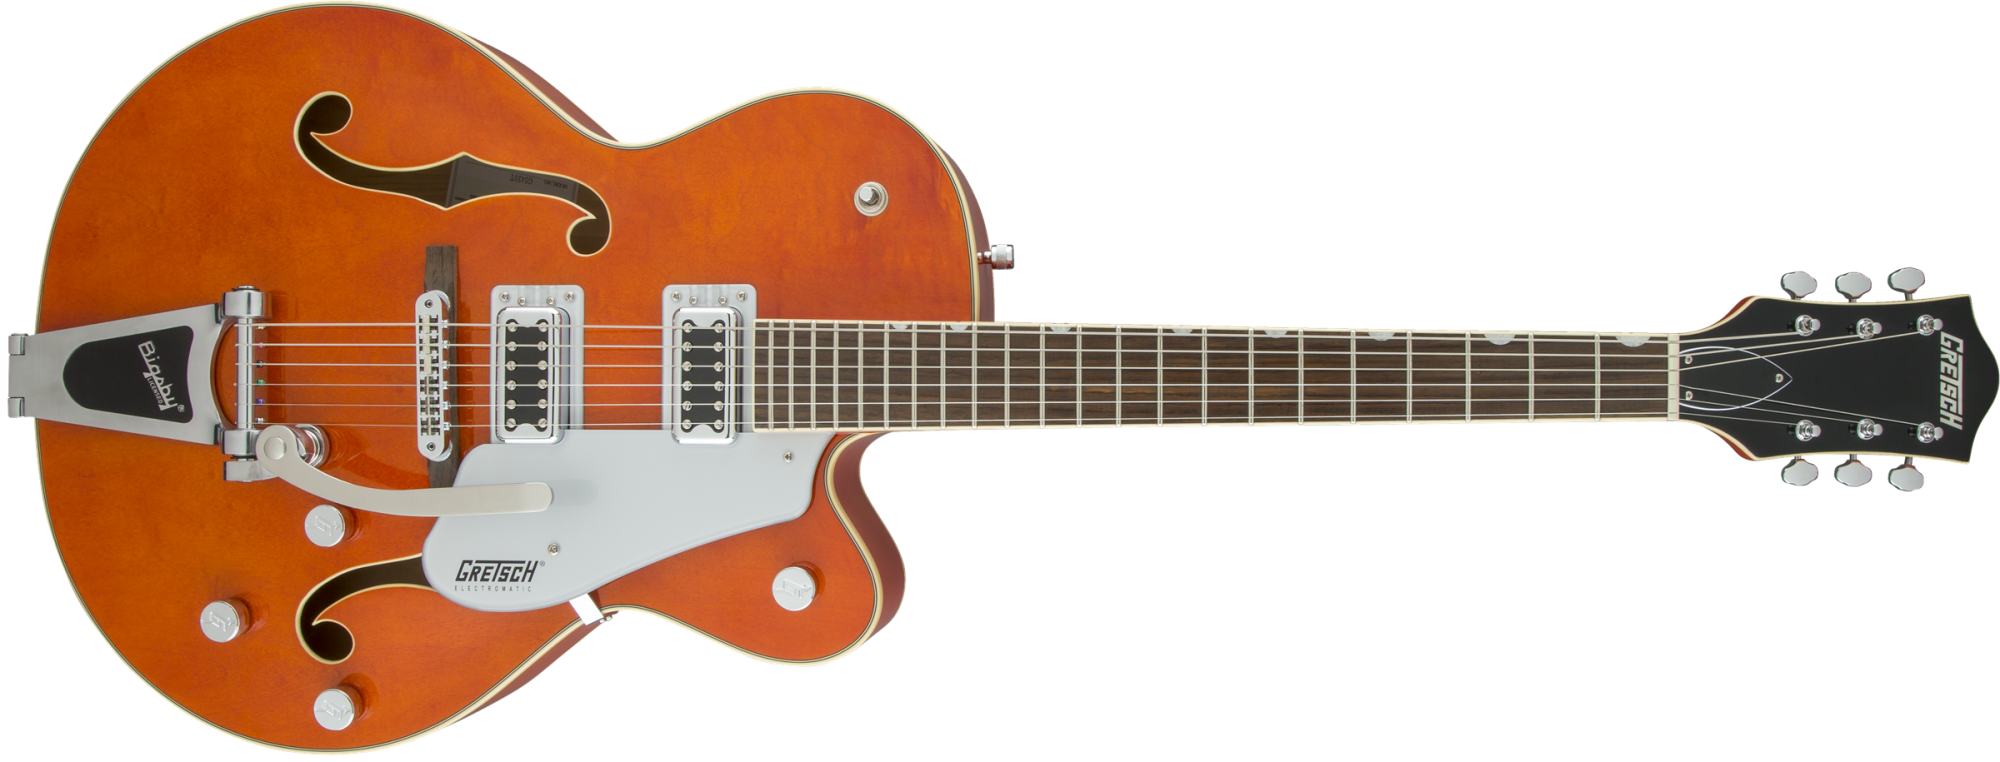 G5420T Electromatic Hollowbody